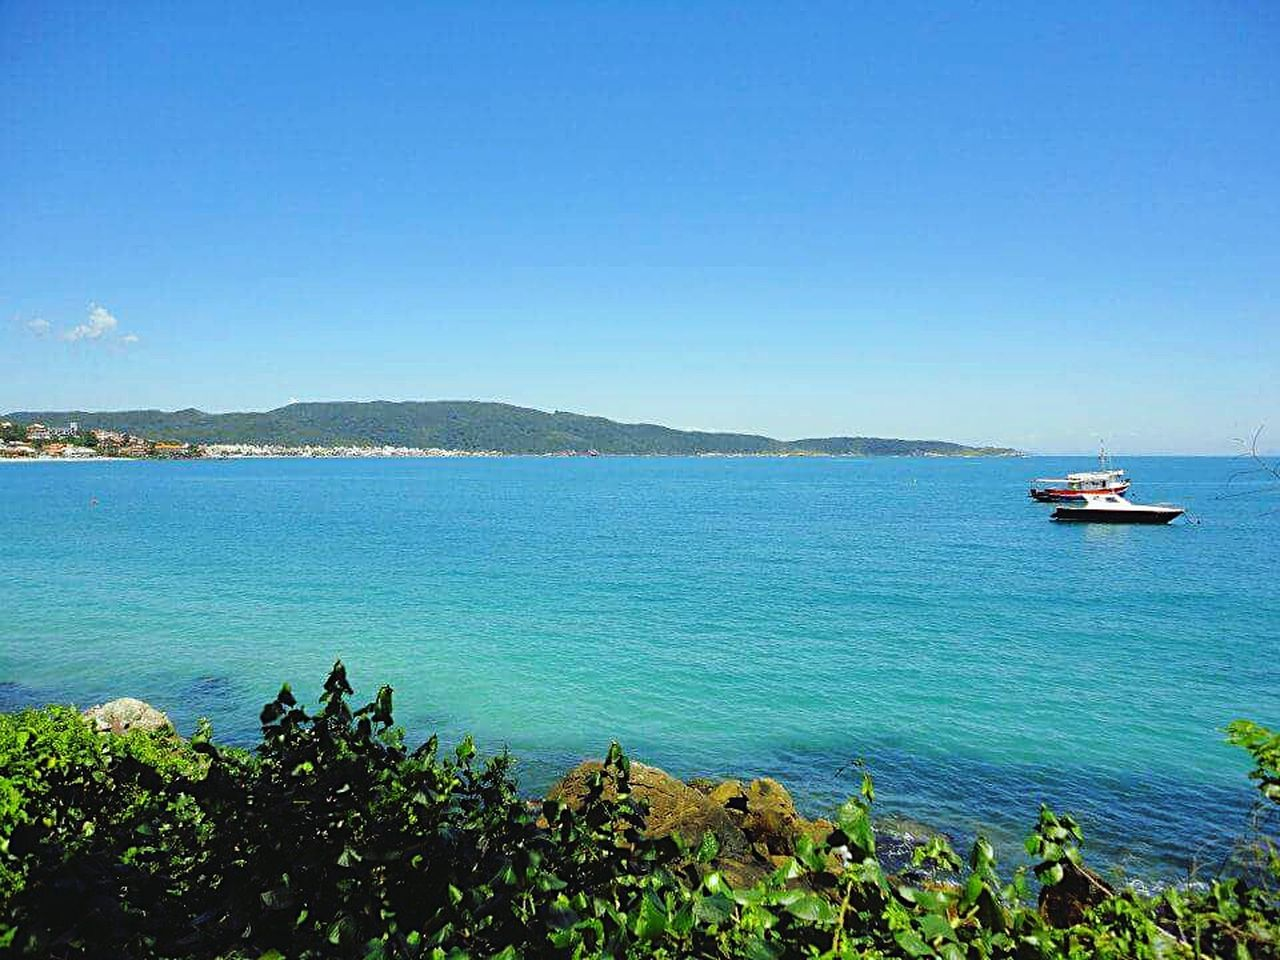 Bombinhas, Santa Catarina - Brasil Blue Sea Blue Sky Clear Sky Bluewaters Landscape Landscape_Collection Water Tranquility Beauty In Nature Nature Travel Destinations Beach Beautiful Beaches BrasilSensacional Santa Catarina, Brazil Bombinhas, SC. Tranquil Scene Peaceful EyeEm Nature Lover Beach Photography